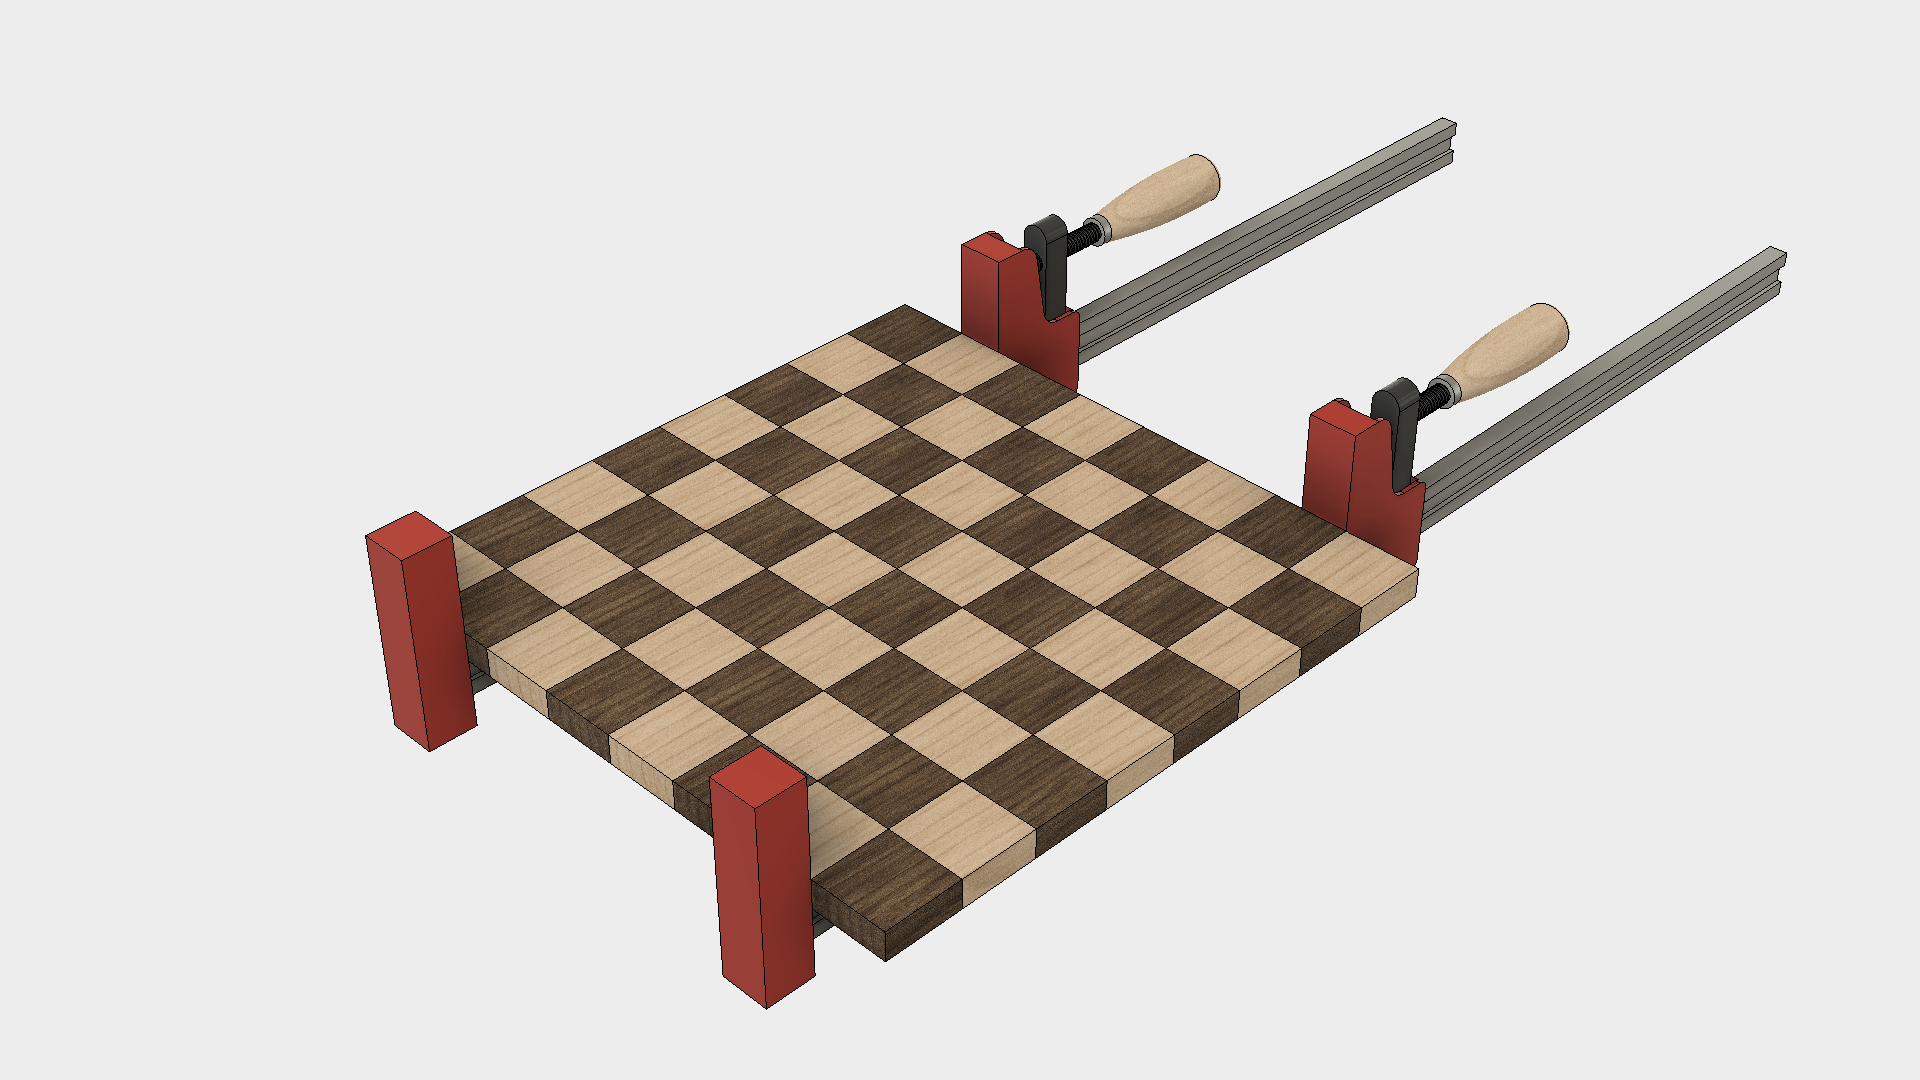 How to Make a Chess Board - Step 6